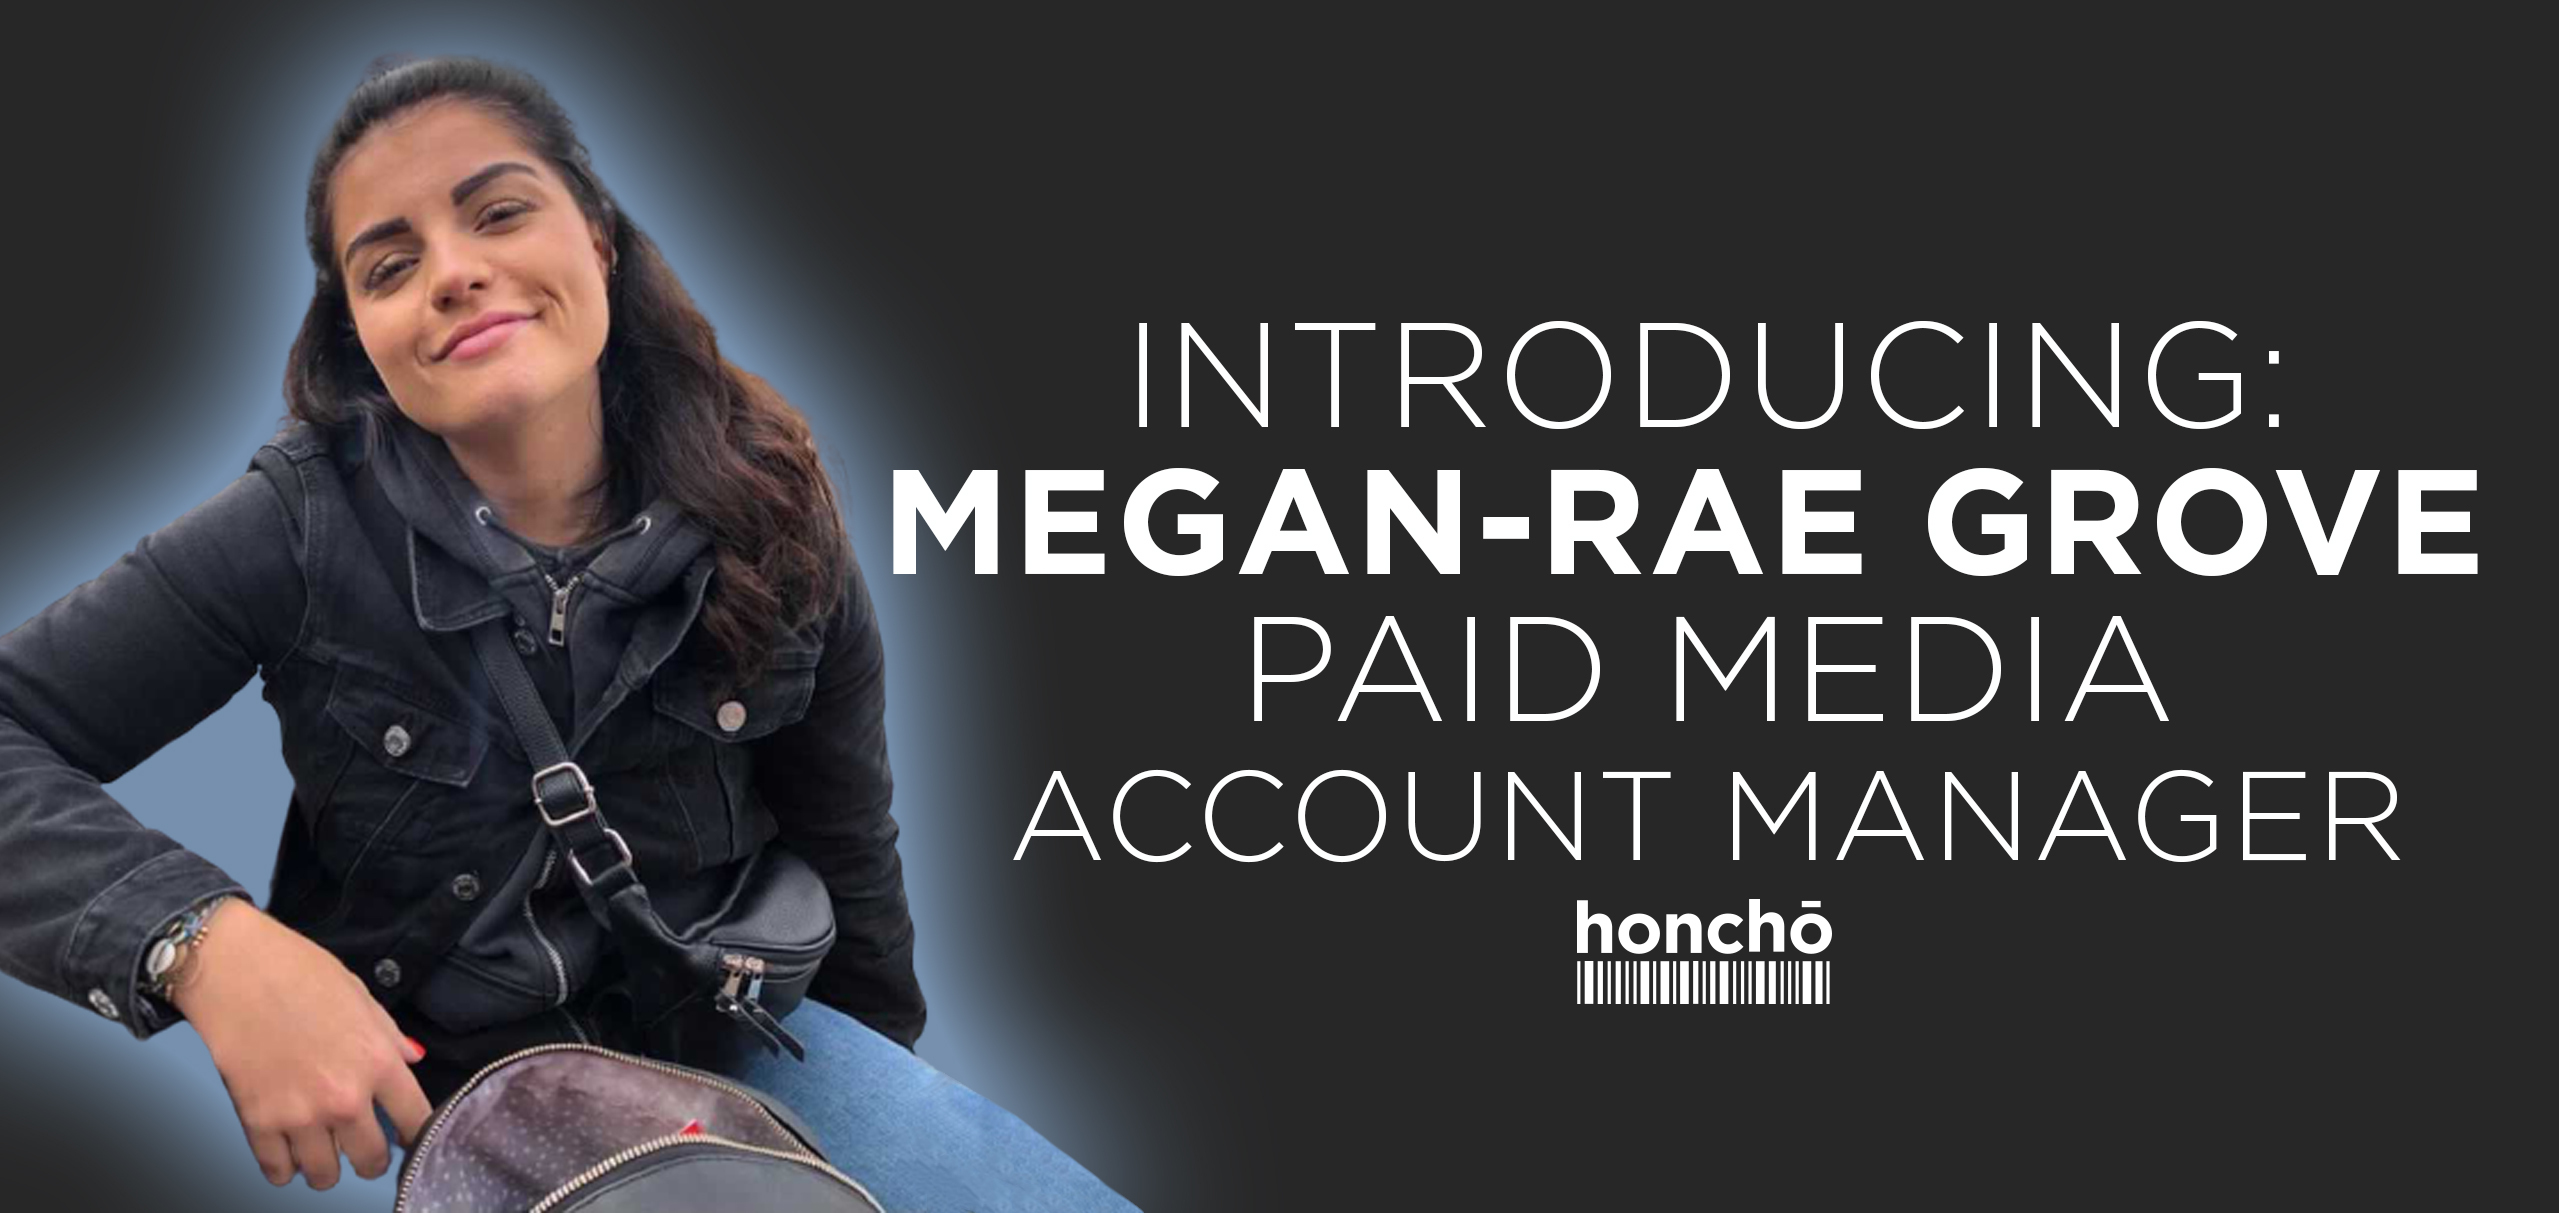 Q&A with Megan-Rae Grove, Paid Media Account Manager